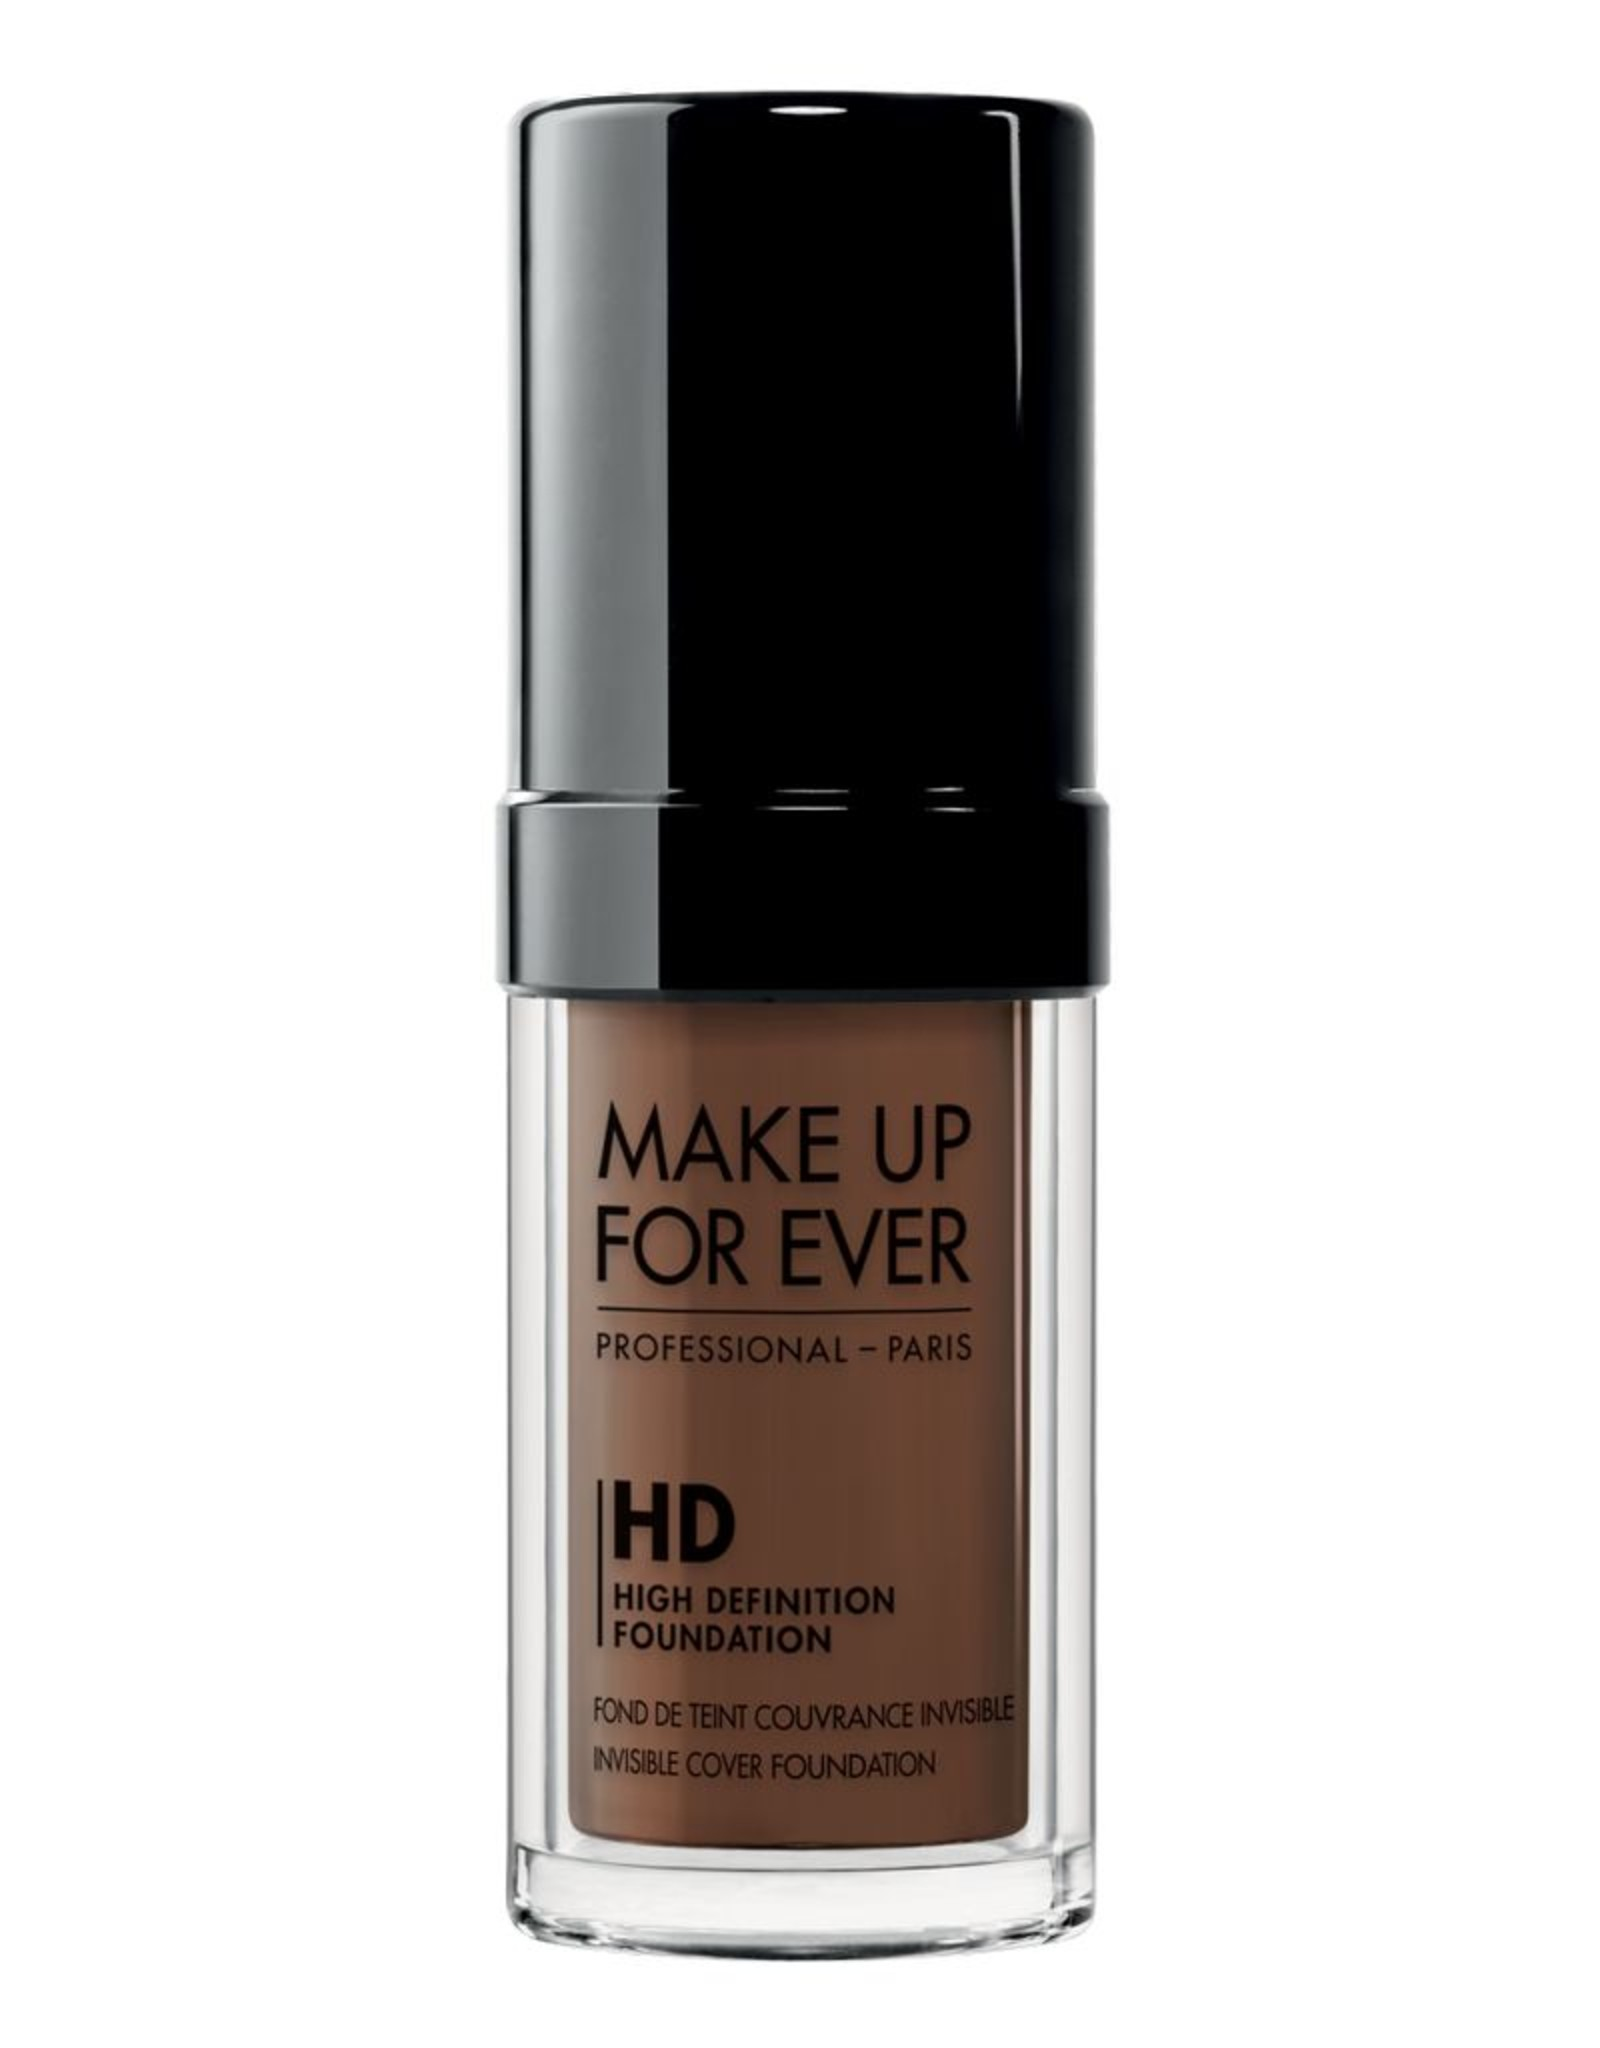 MUFE FOND DE TEINT HD 30ML (invisible) N¡185 -ebene / ebony